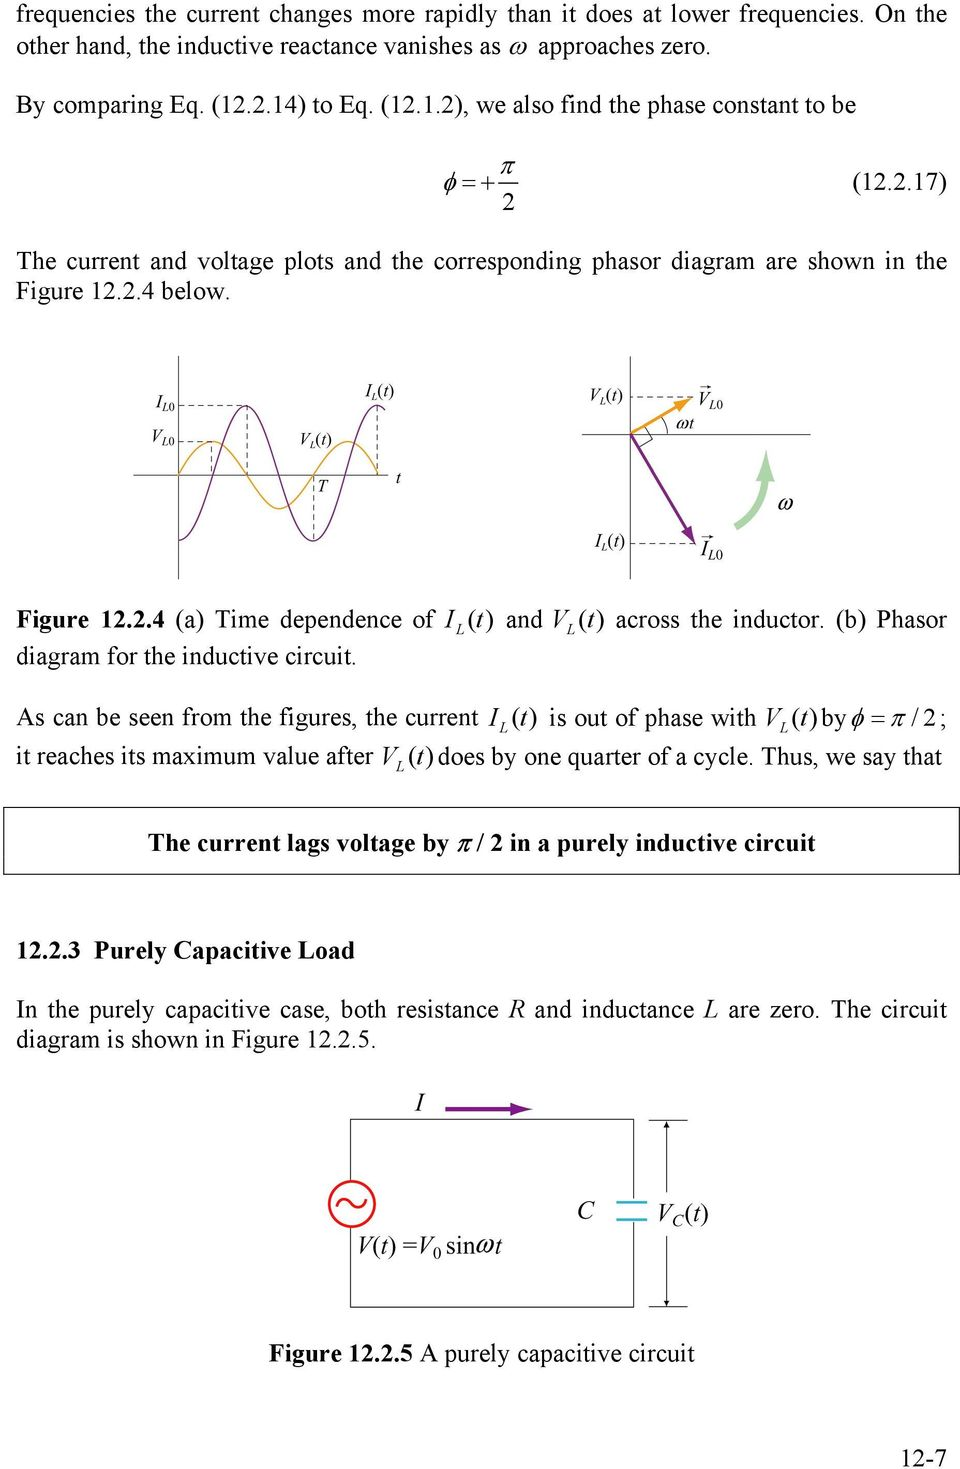 hight resolution of  purely capacitive circuit 1 7 4 below figure 1 4 a time dependence of i